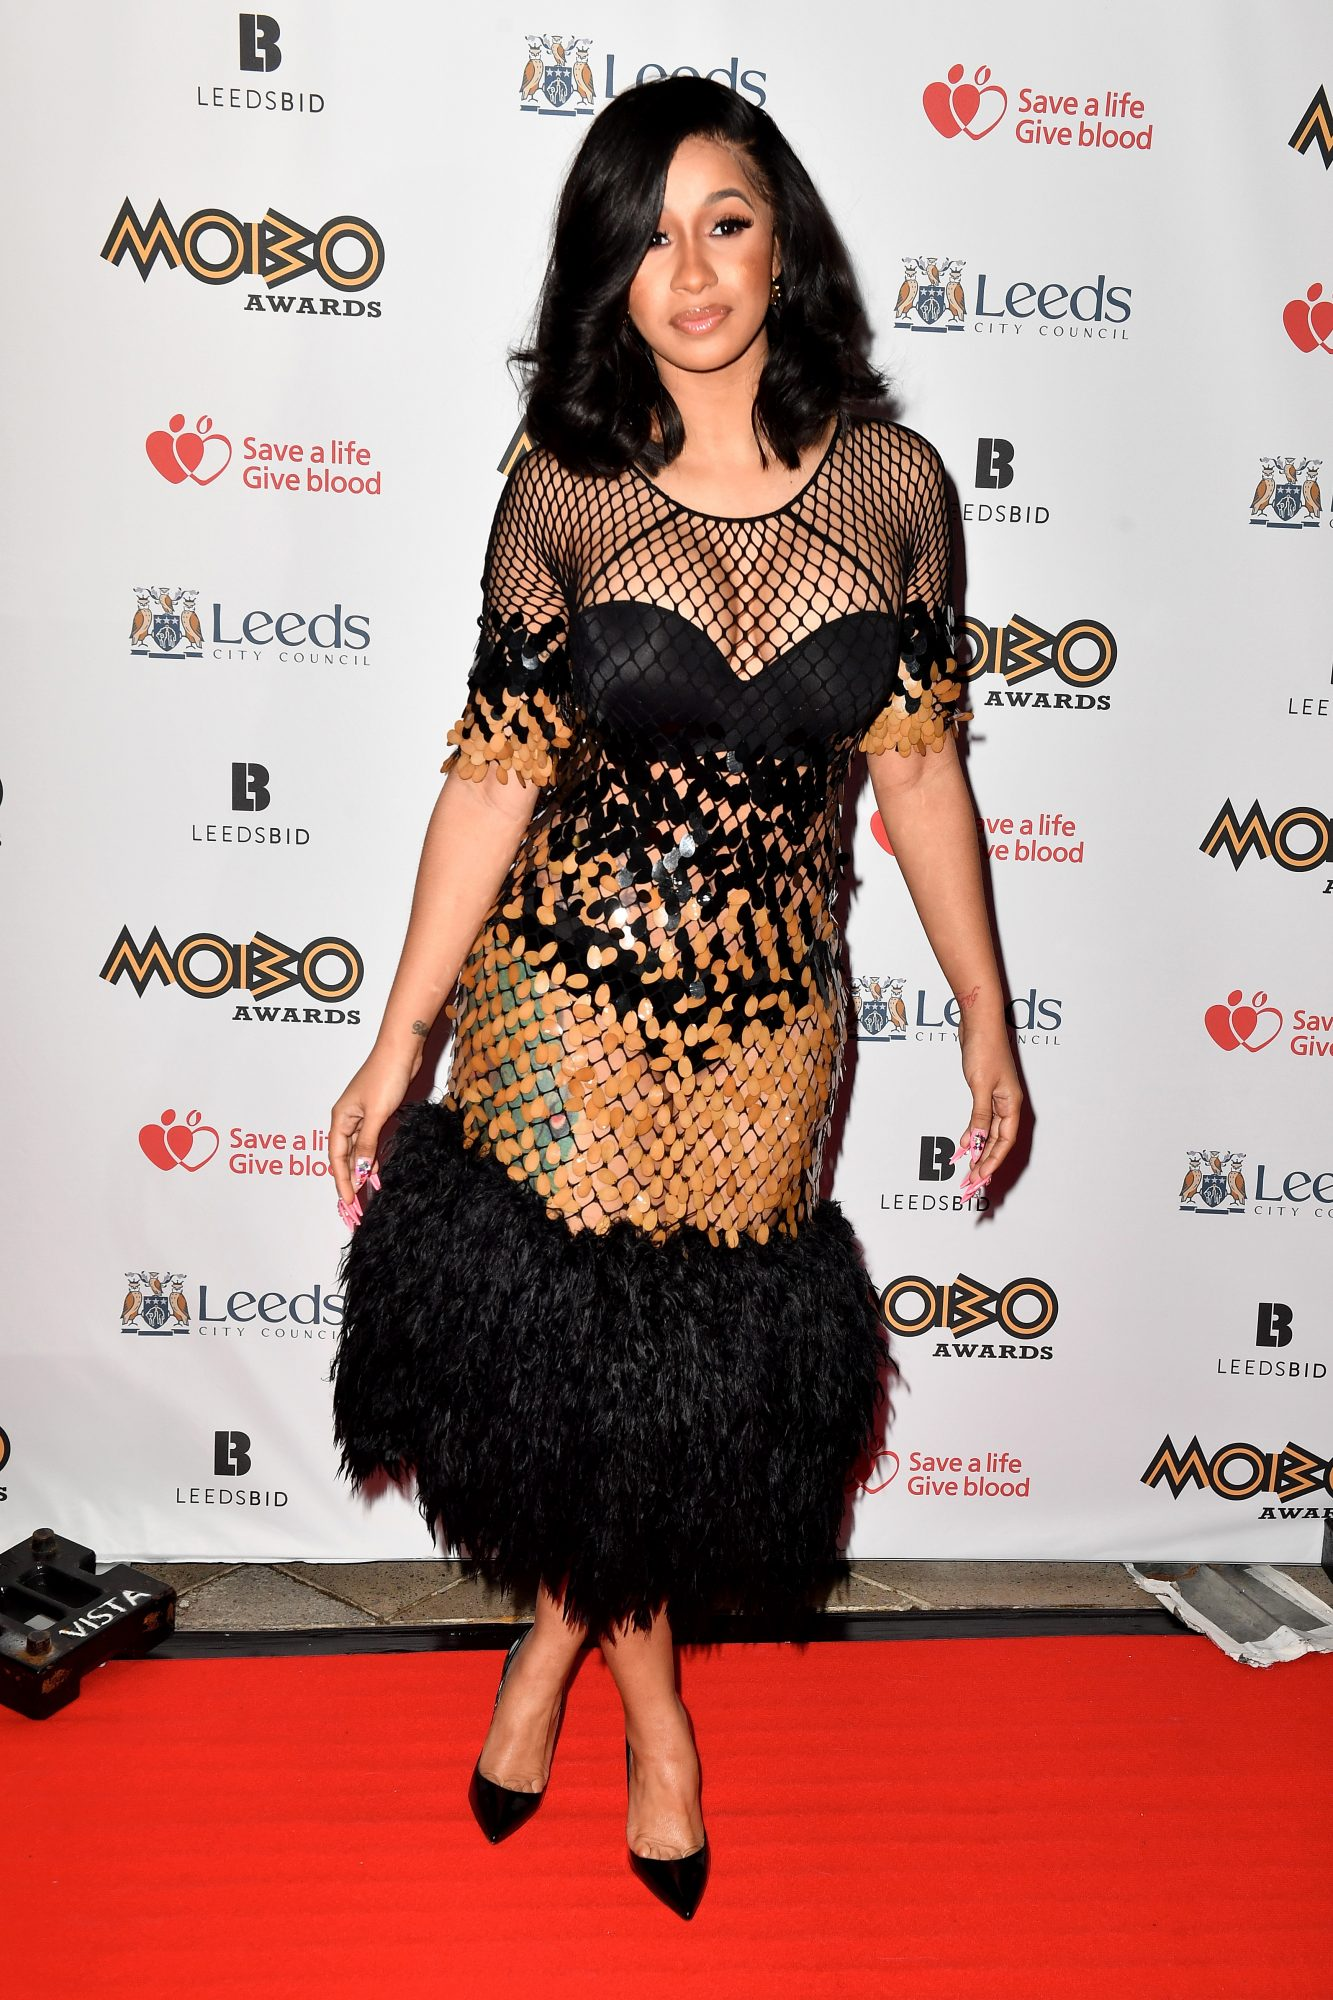 <p>Feathers, sequins, and a little mesh on top</p>